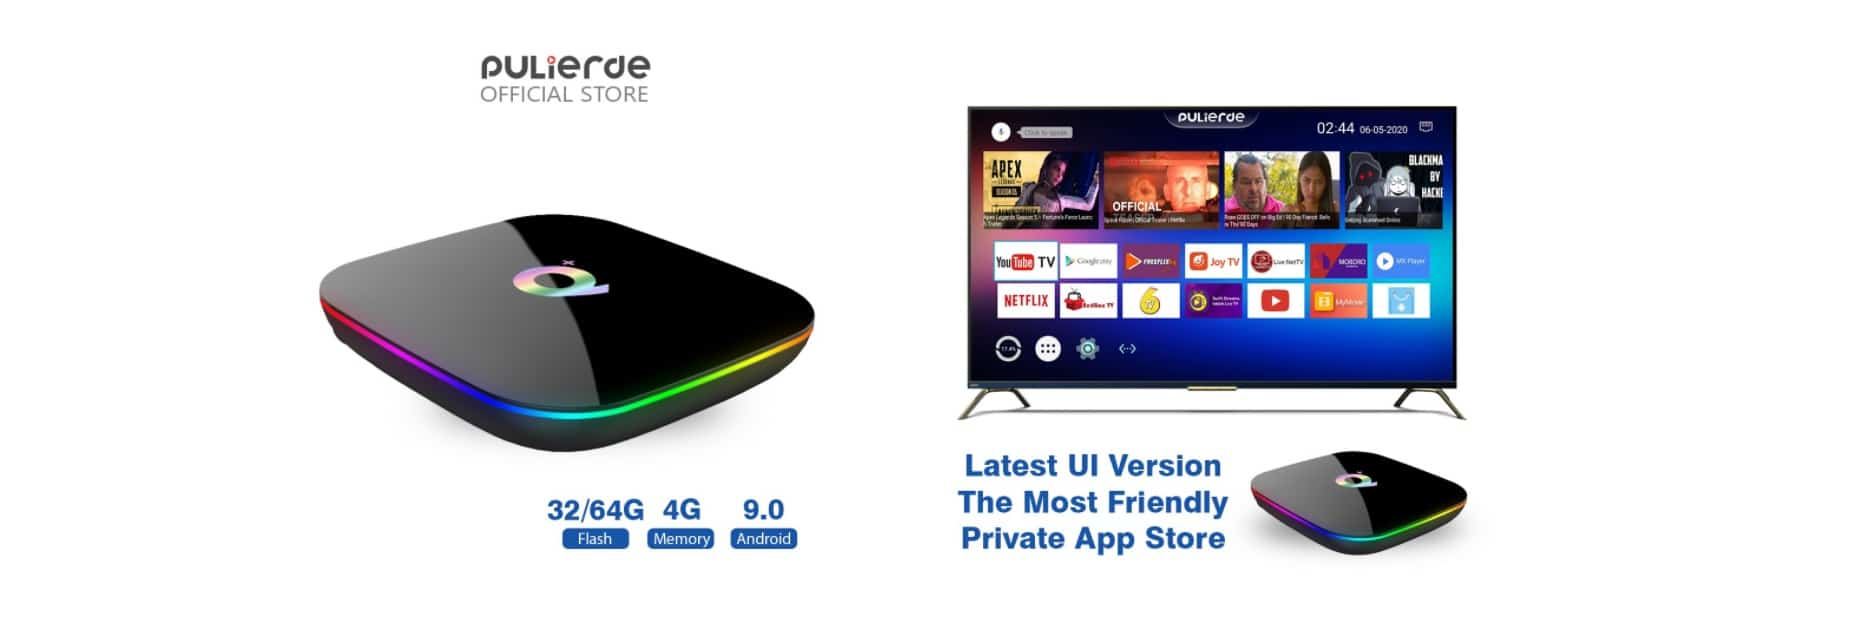 Q+ Android 9.0 TV Box